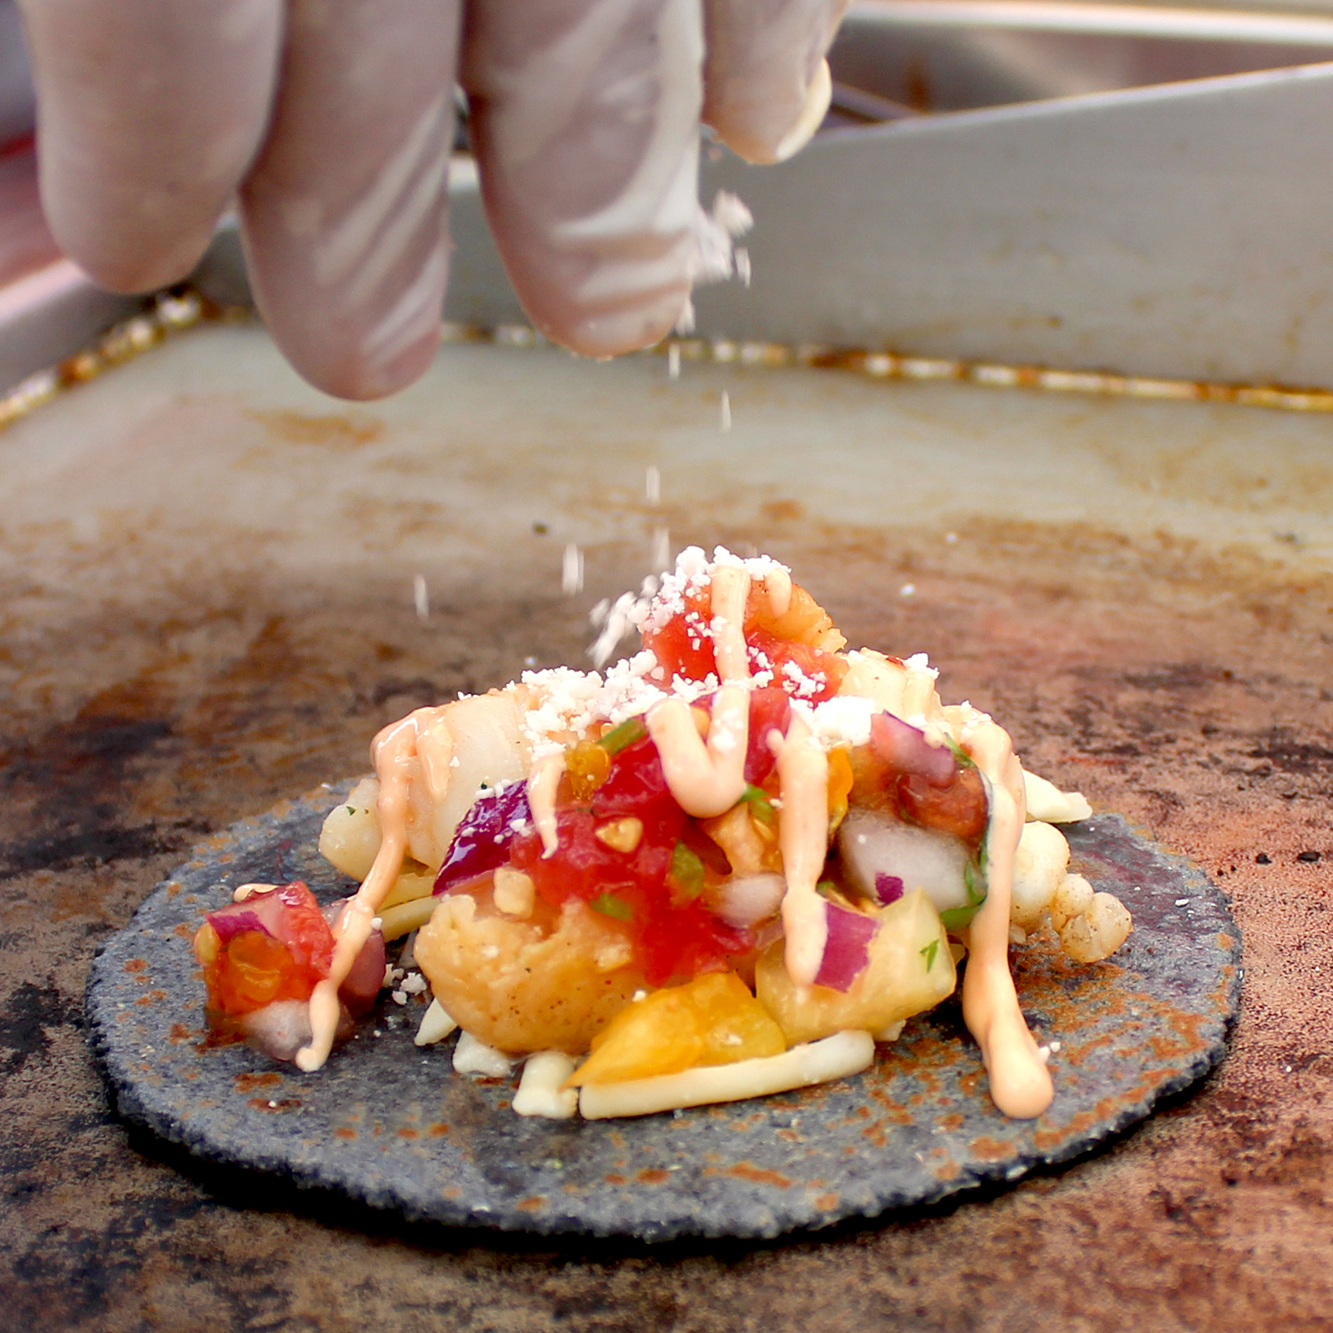 SoHo Taco Gourmet Taco Truck - Lobster Taco Blue Corn Tortilla - Orange County CA